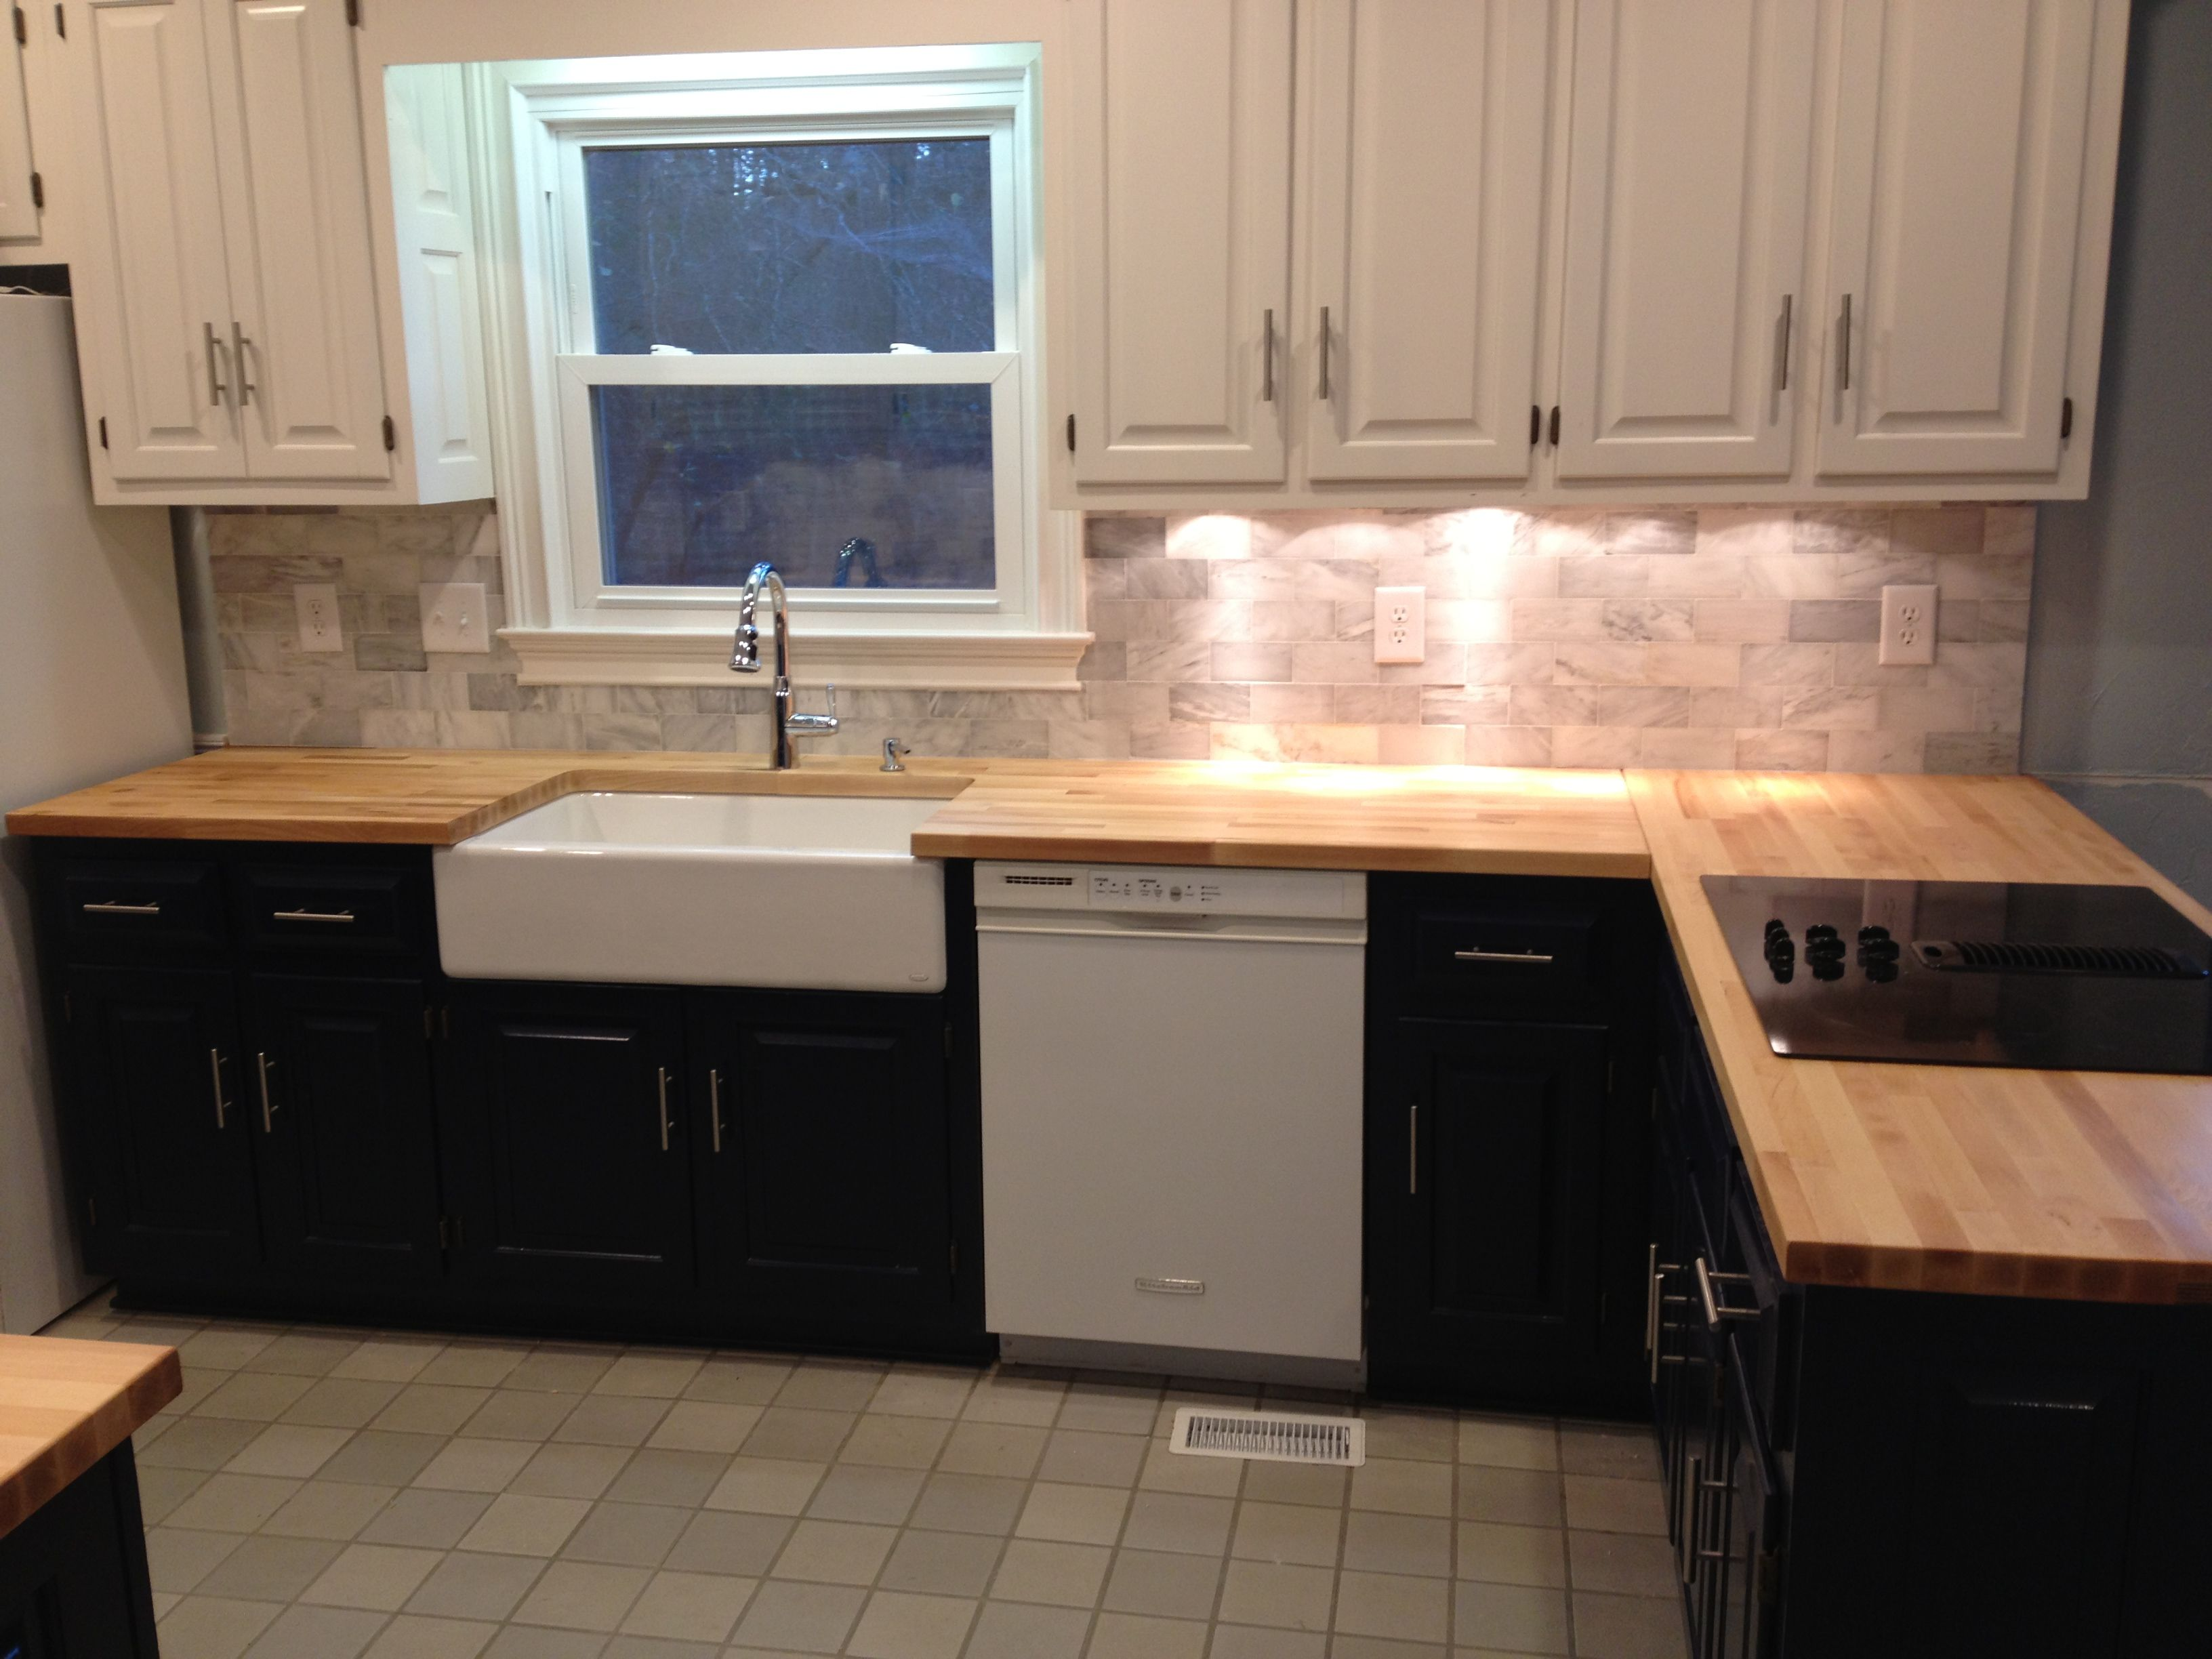 Best Backsplash For Butcher Block Countertops : Kitchen remodel - we used Butcher Block counter tops, carrera marble tiles for the back-splash ...